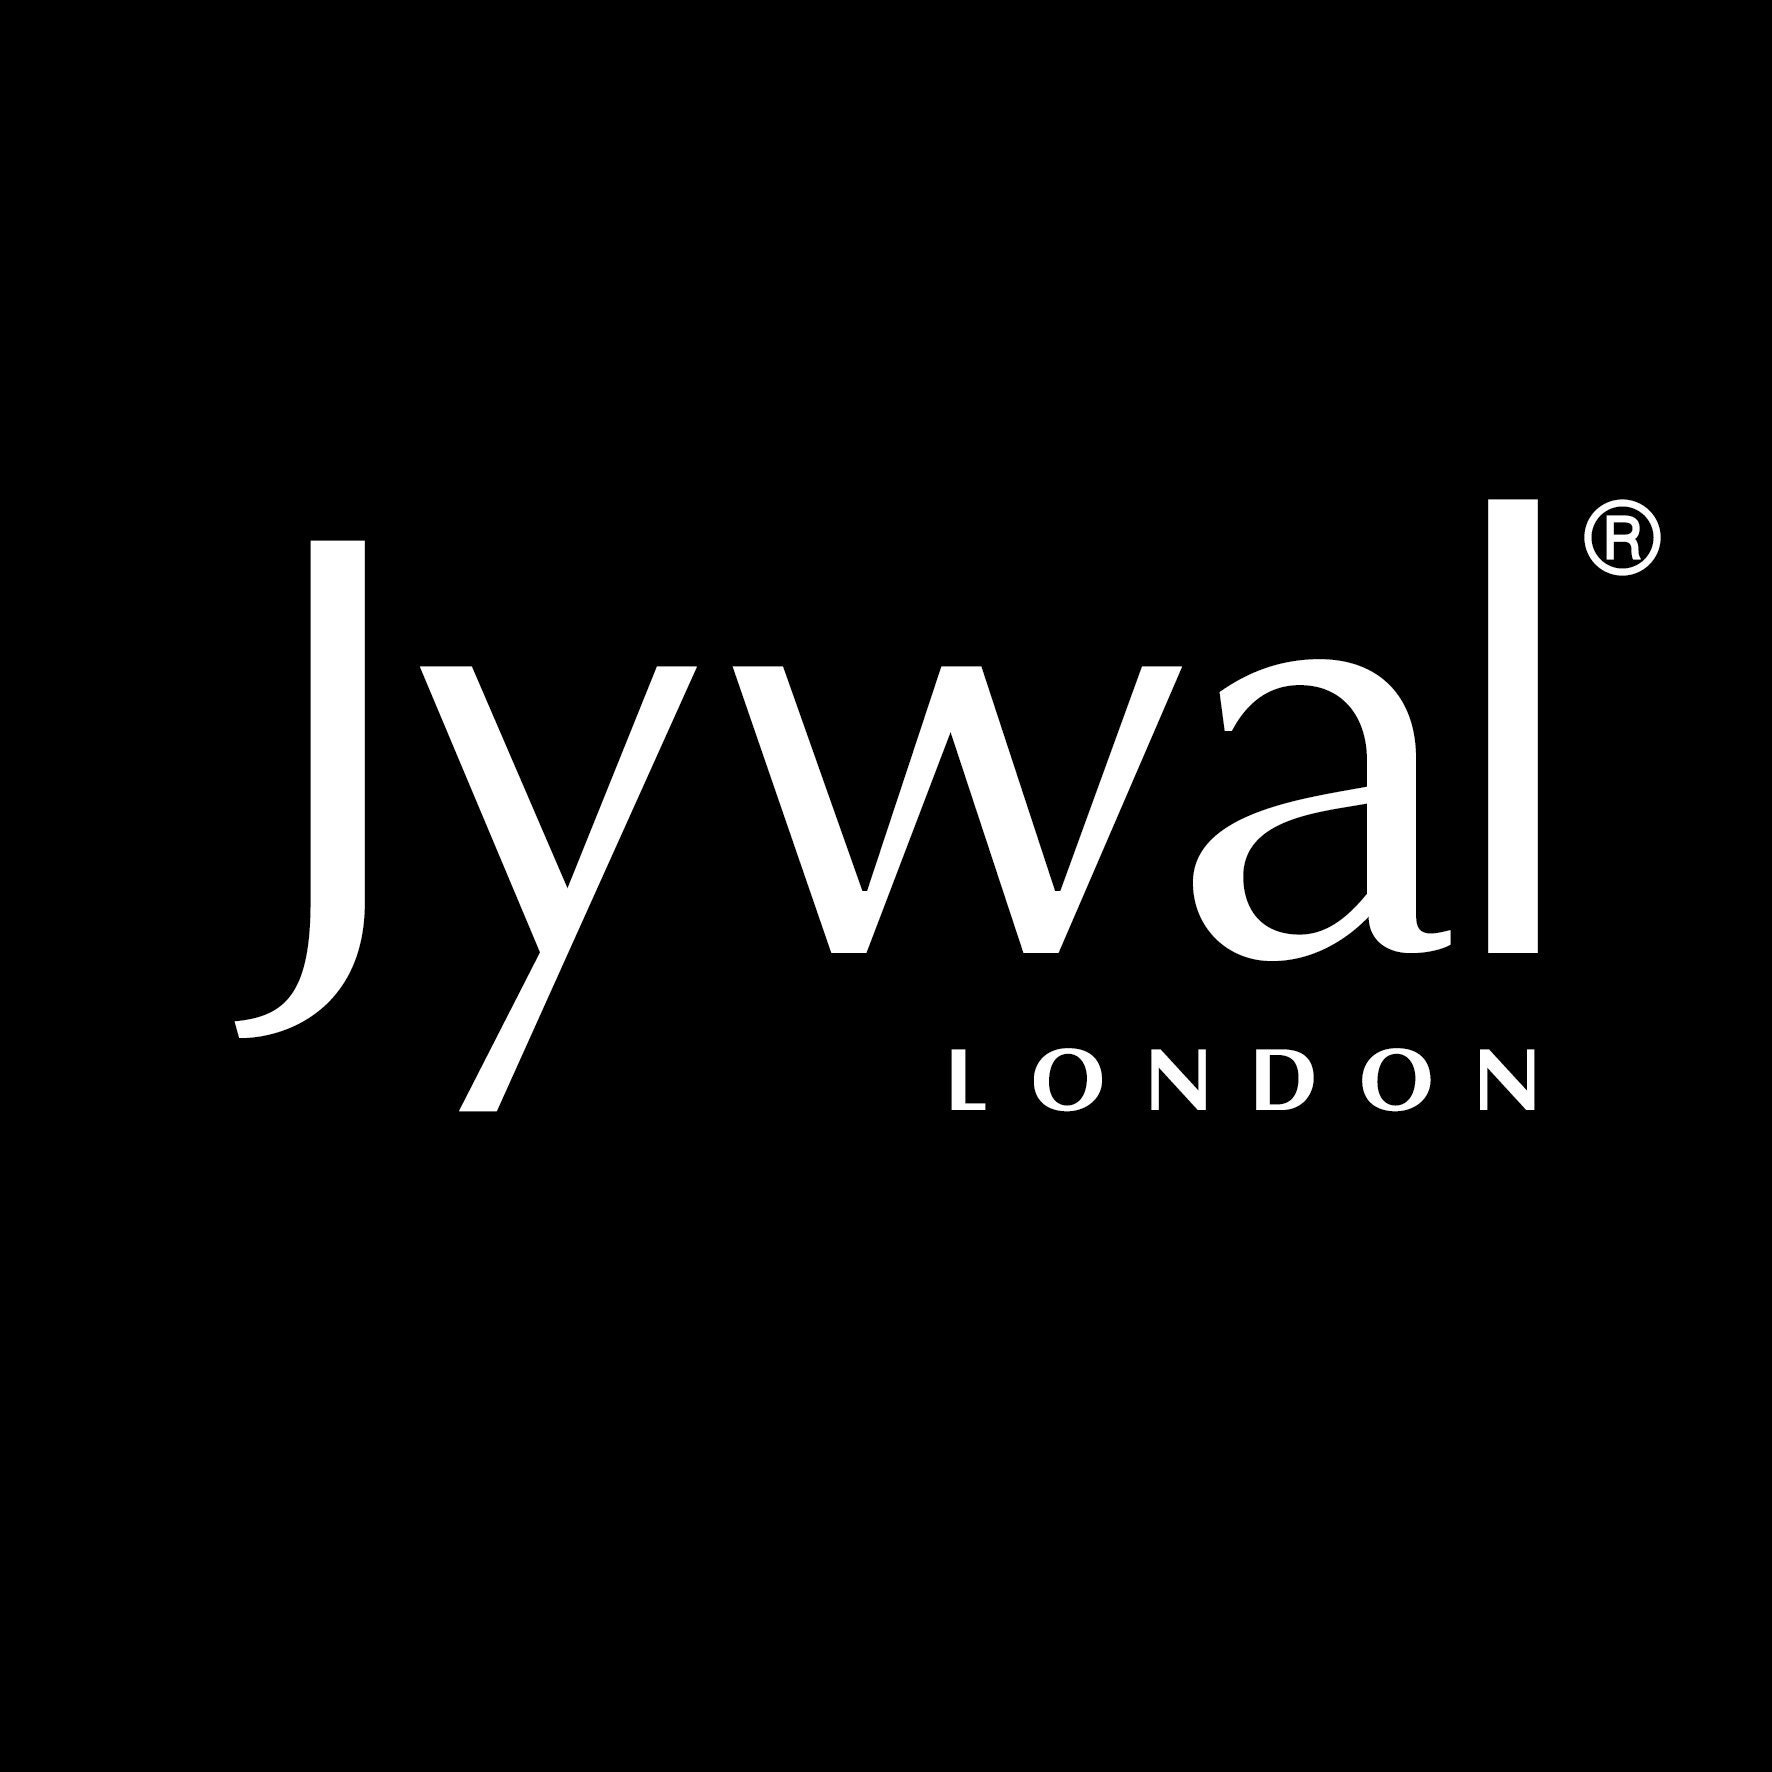 f755d3e2462 Hand Embellished Dresses by Jywal on Etsy